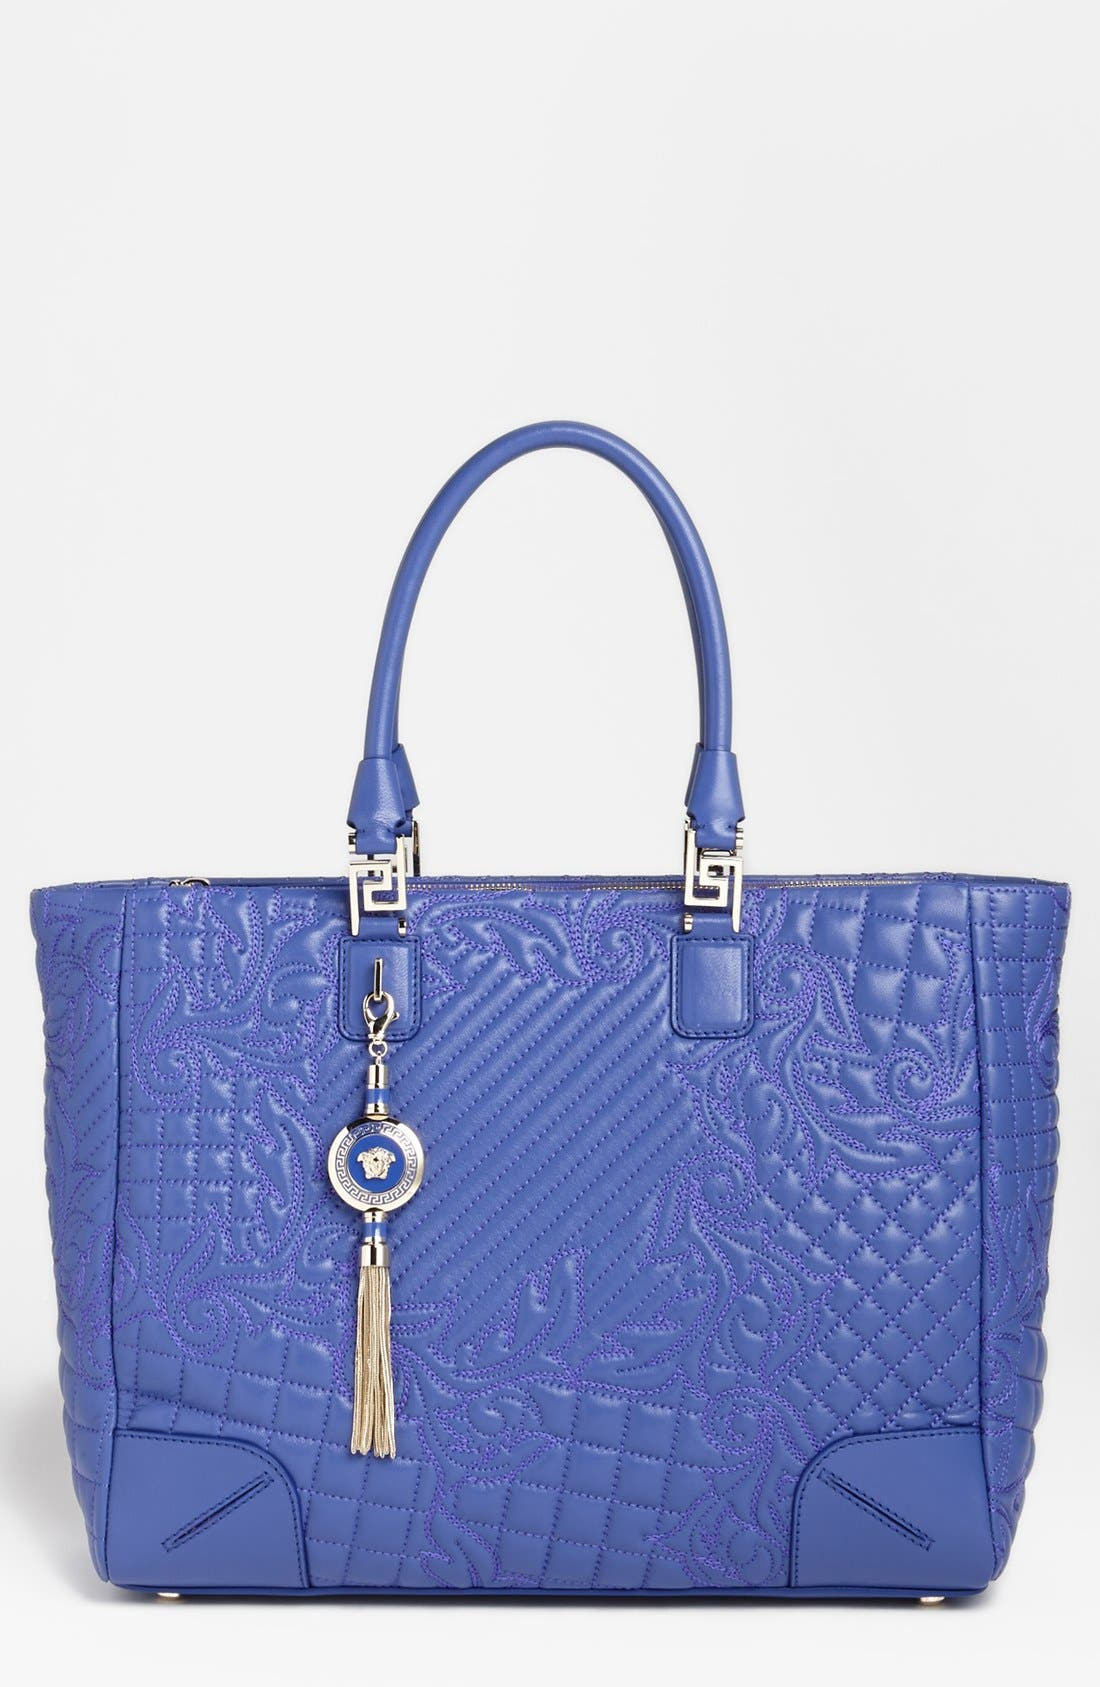 Alternate Image 1 Selected - Versace 'Vanitas' Embroidered Leather Tote